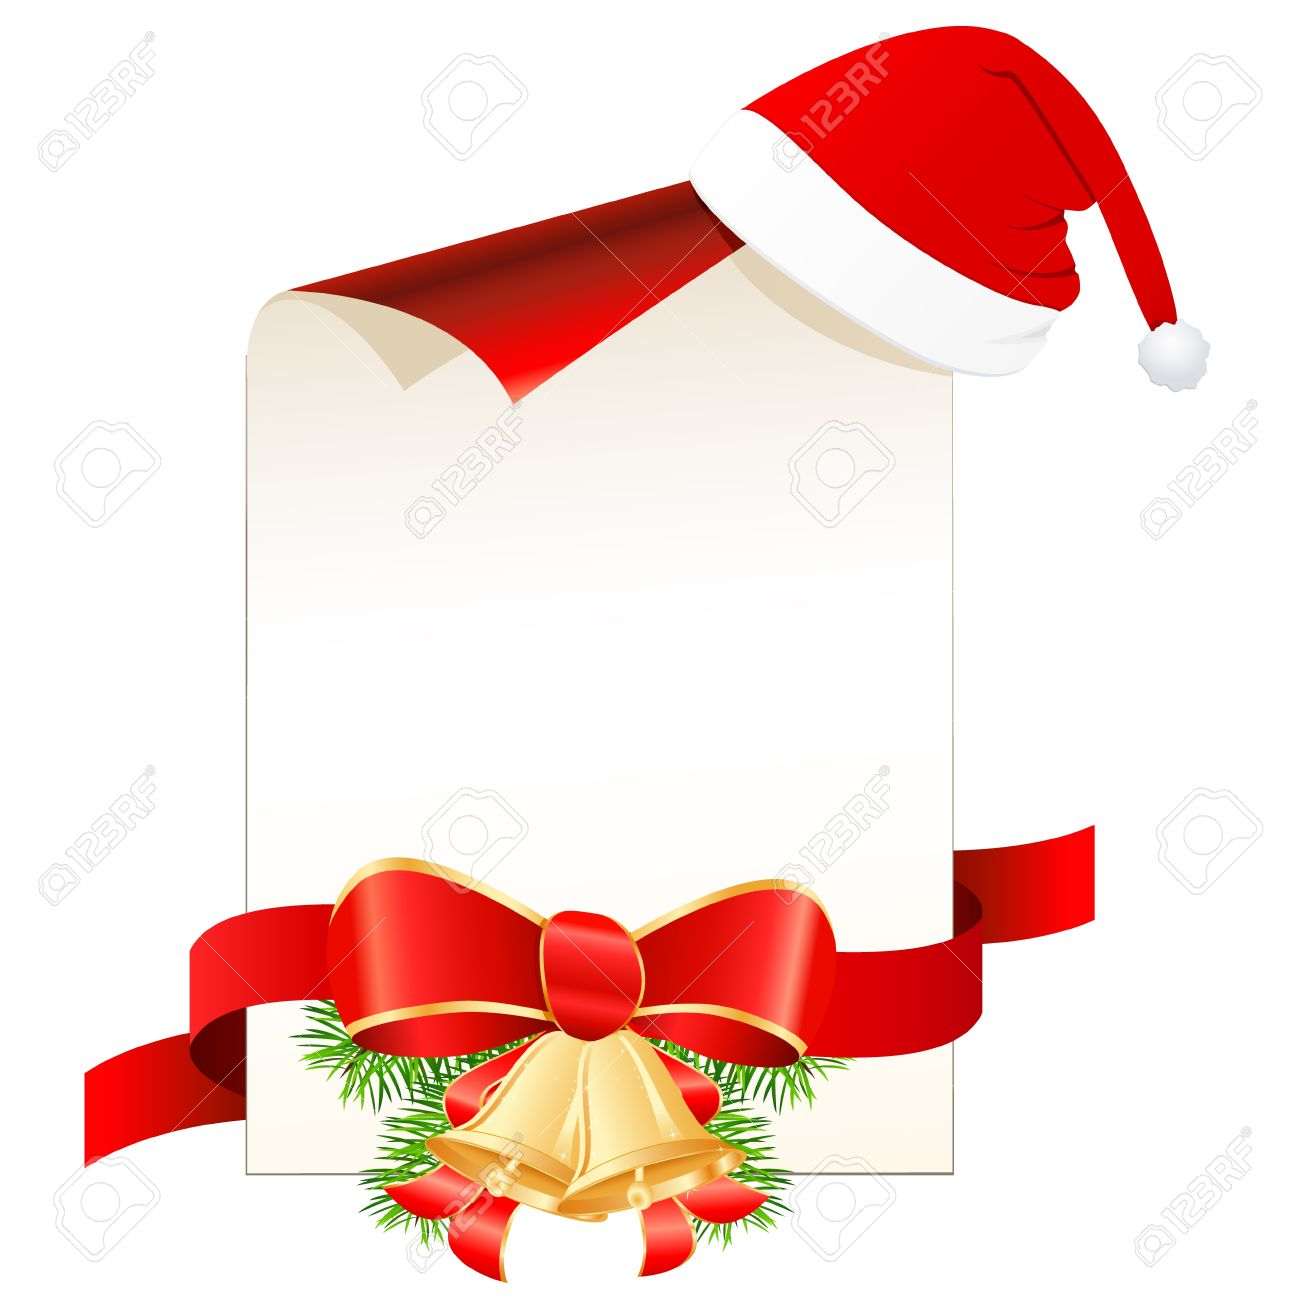 Christmas Wish List With Santa Hat Royalty Free Cliparts, Vectors ...